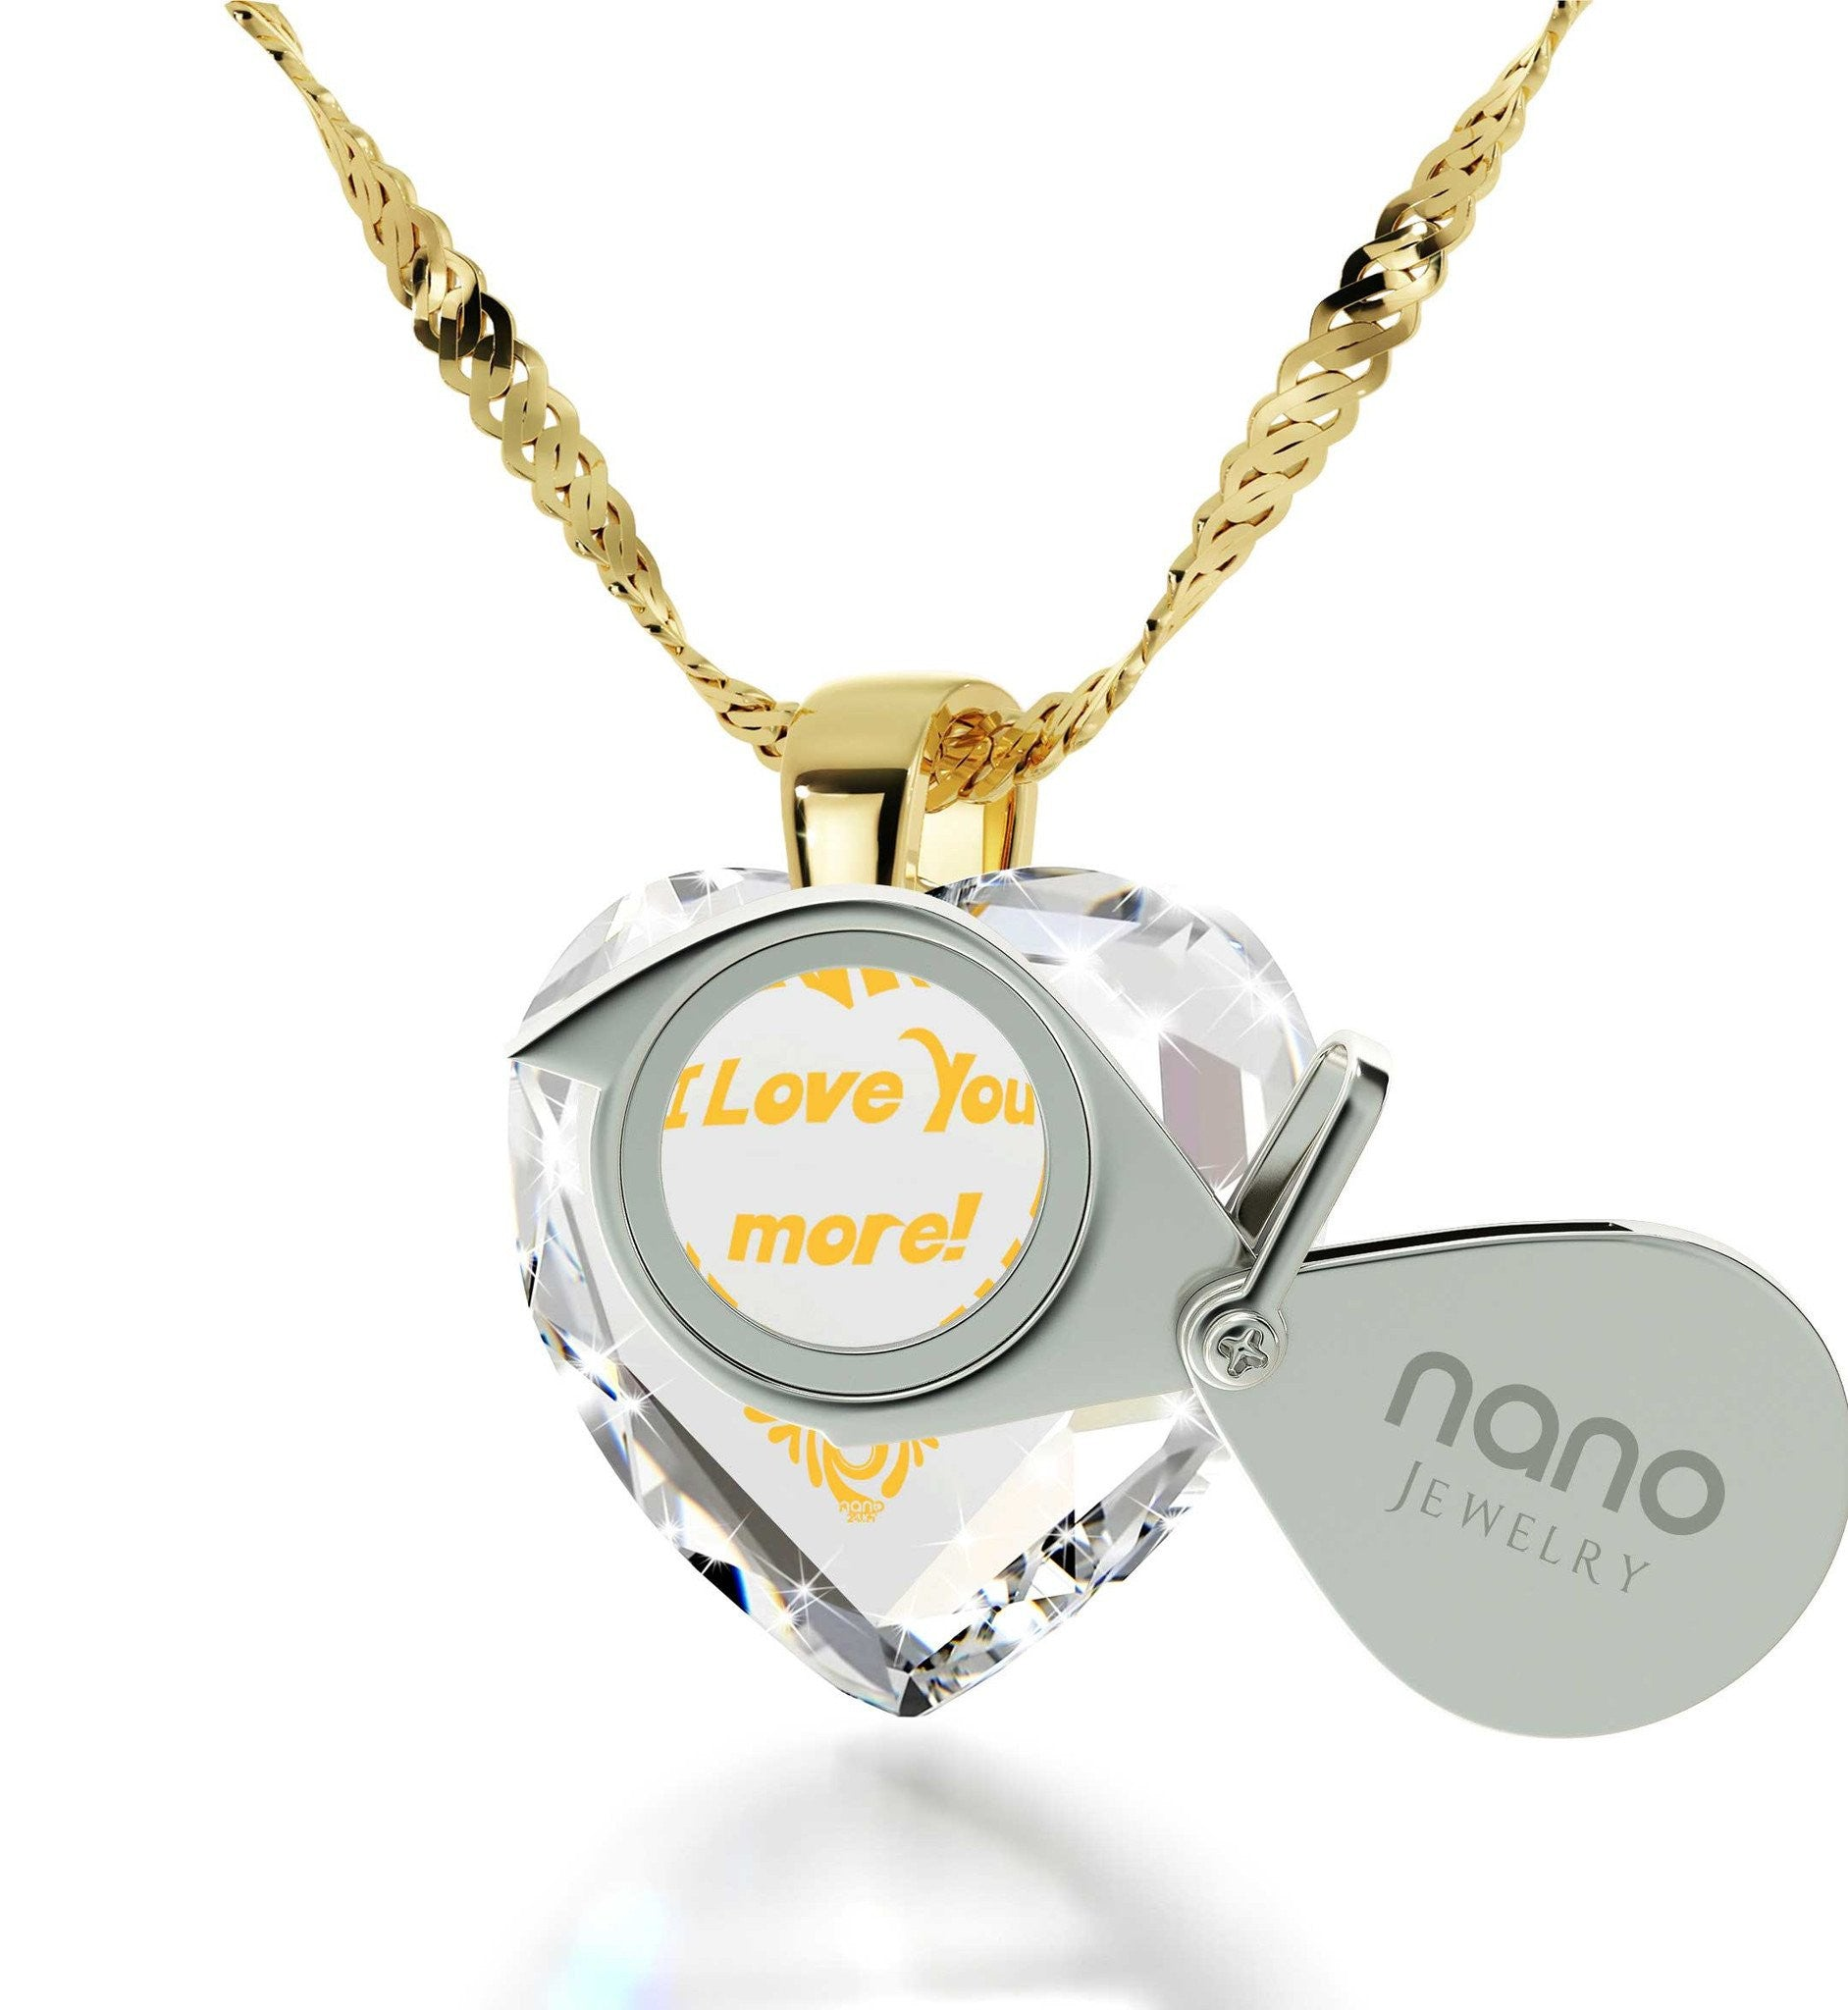 """Great Gifts for Wife, Heart Shaped Necklace, 24k Engraved Pendant, Cute Presents for Girlfriend, Nano Jewelry"""